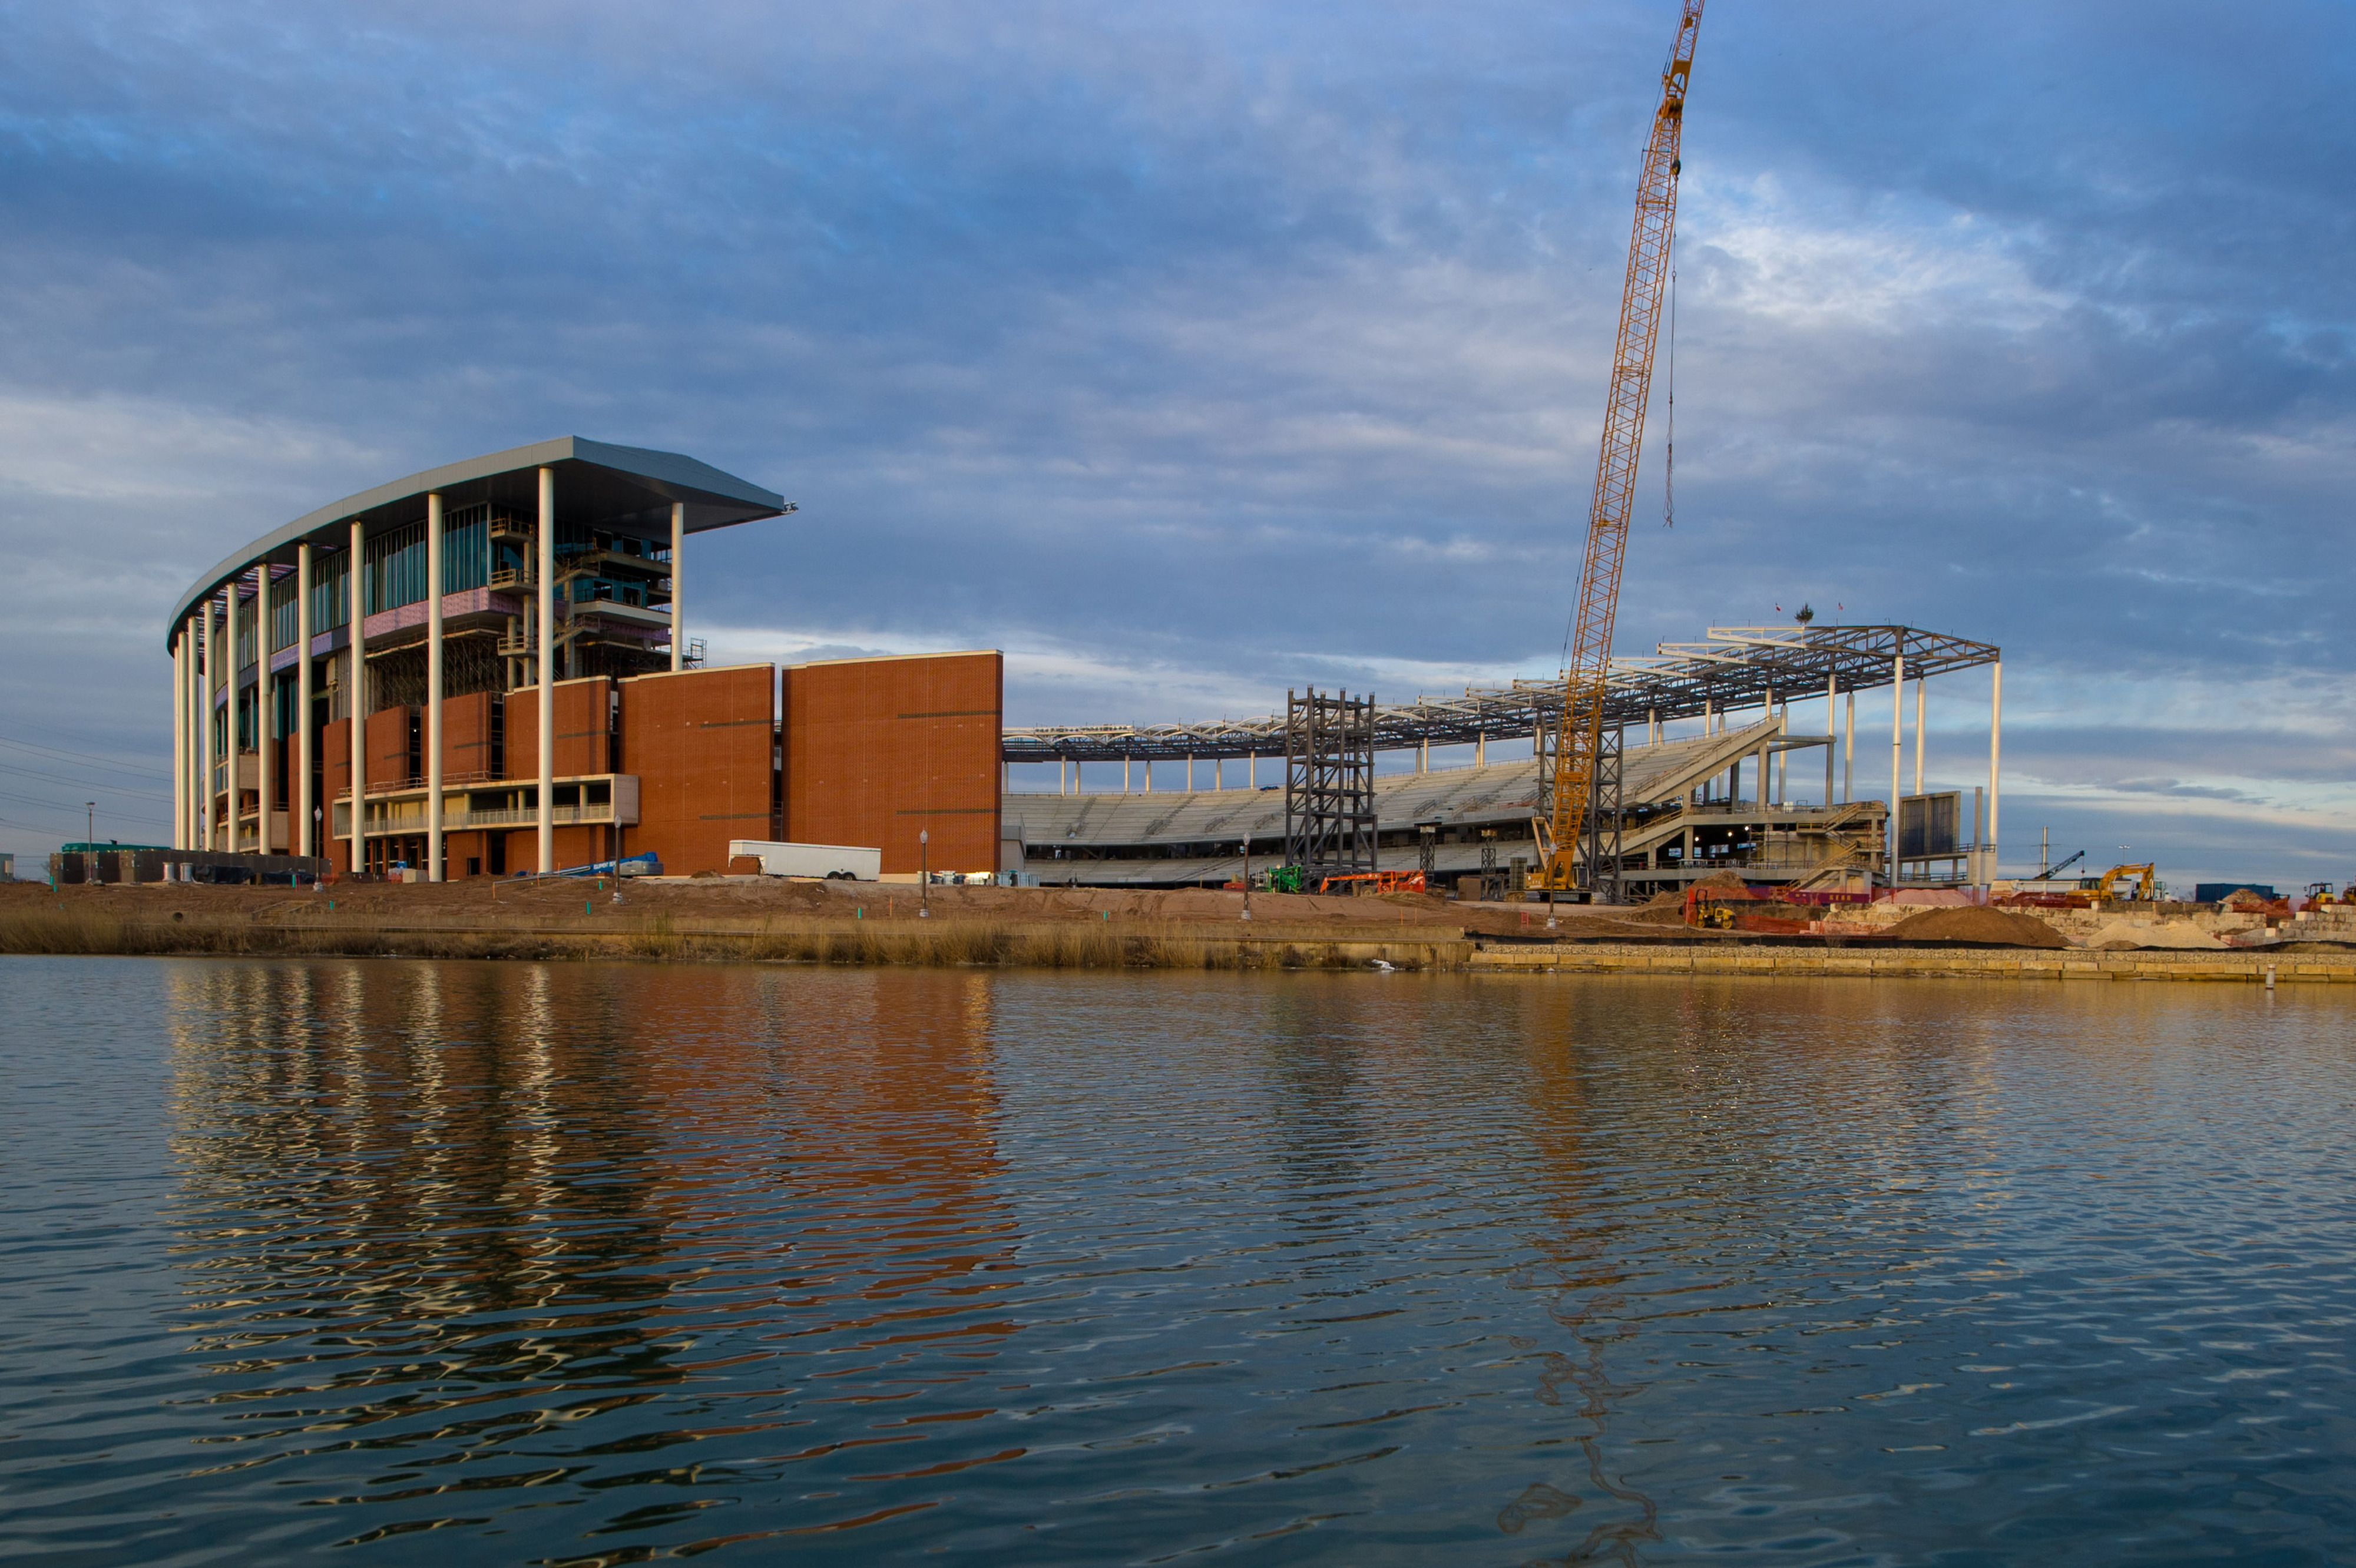 WE HAD MCLANE STADIUM PICS THE WHOLE TIME AND NOBODY TOLD ME?